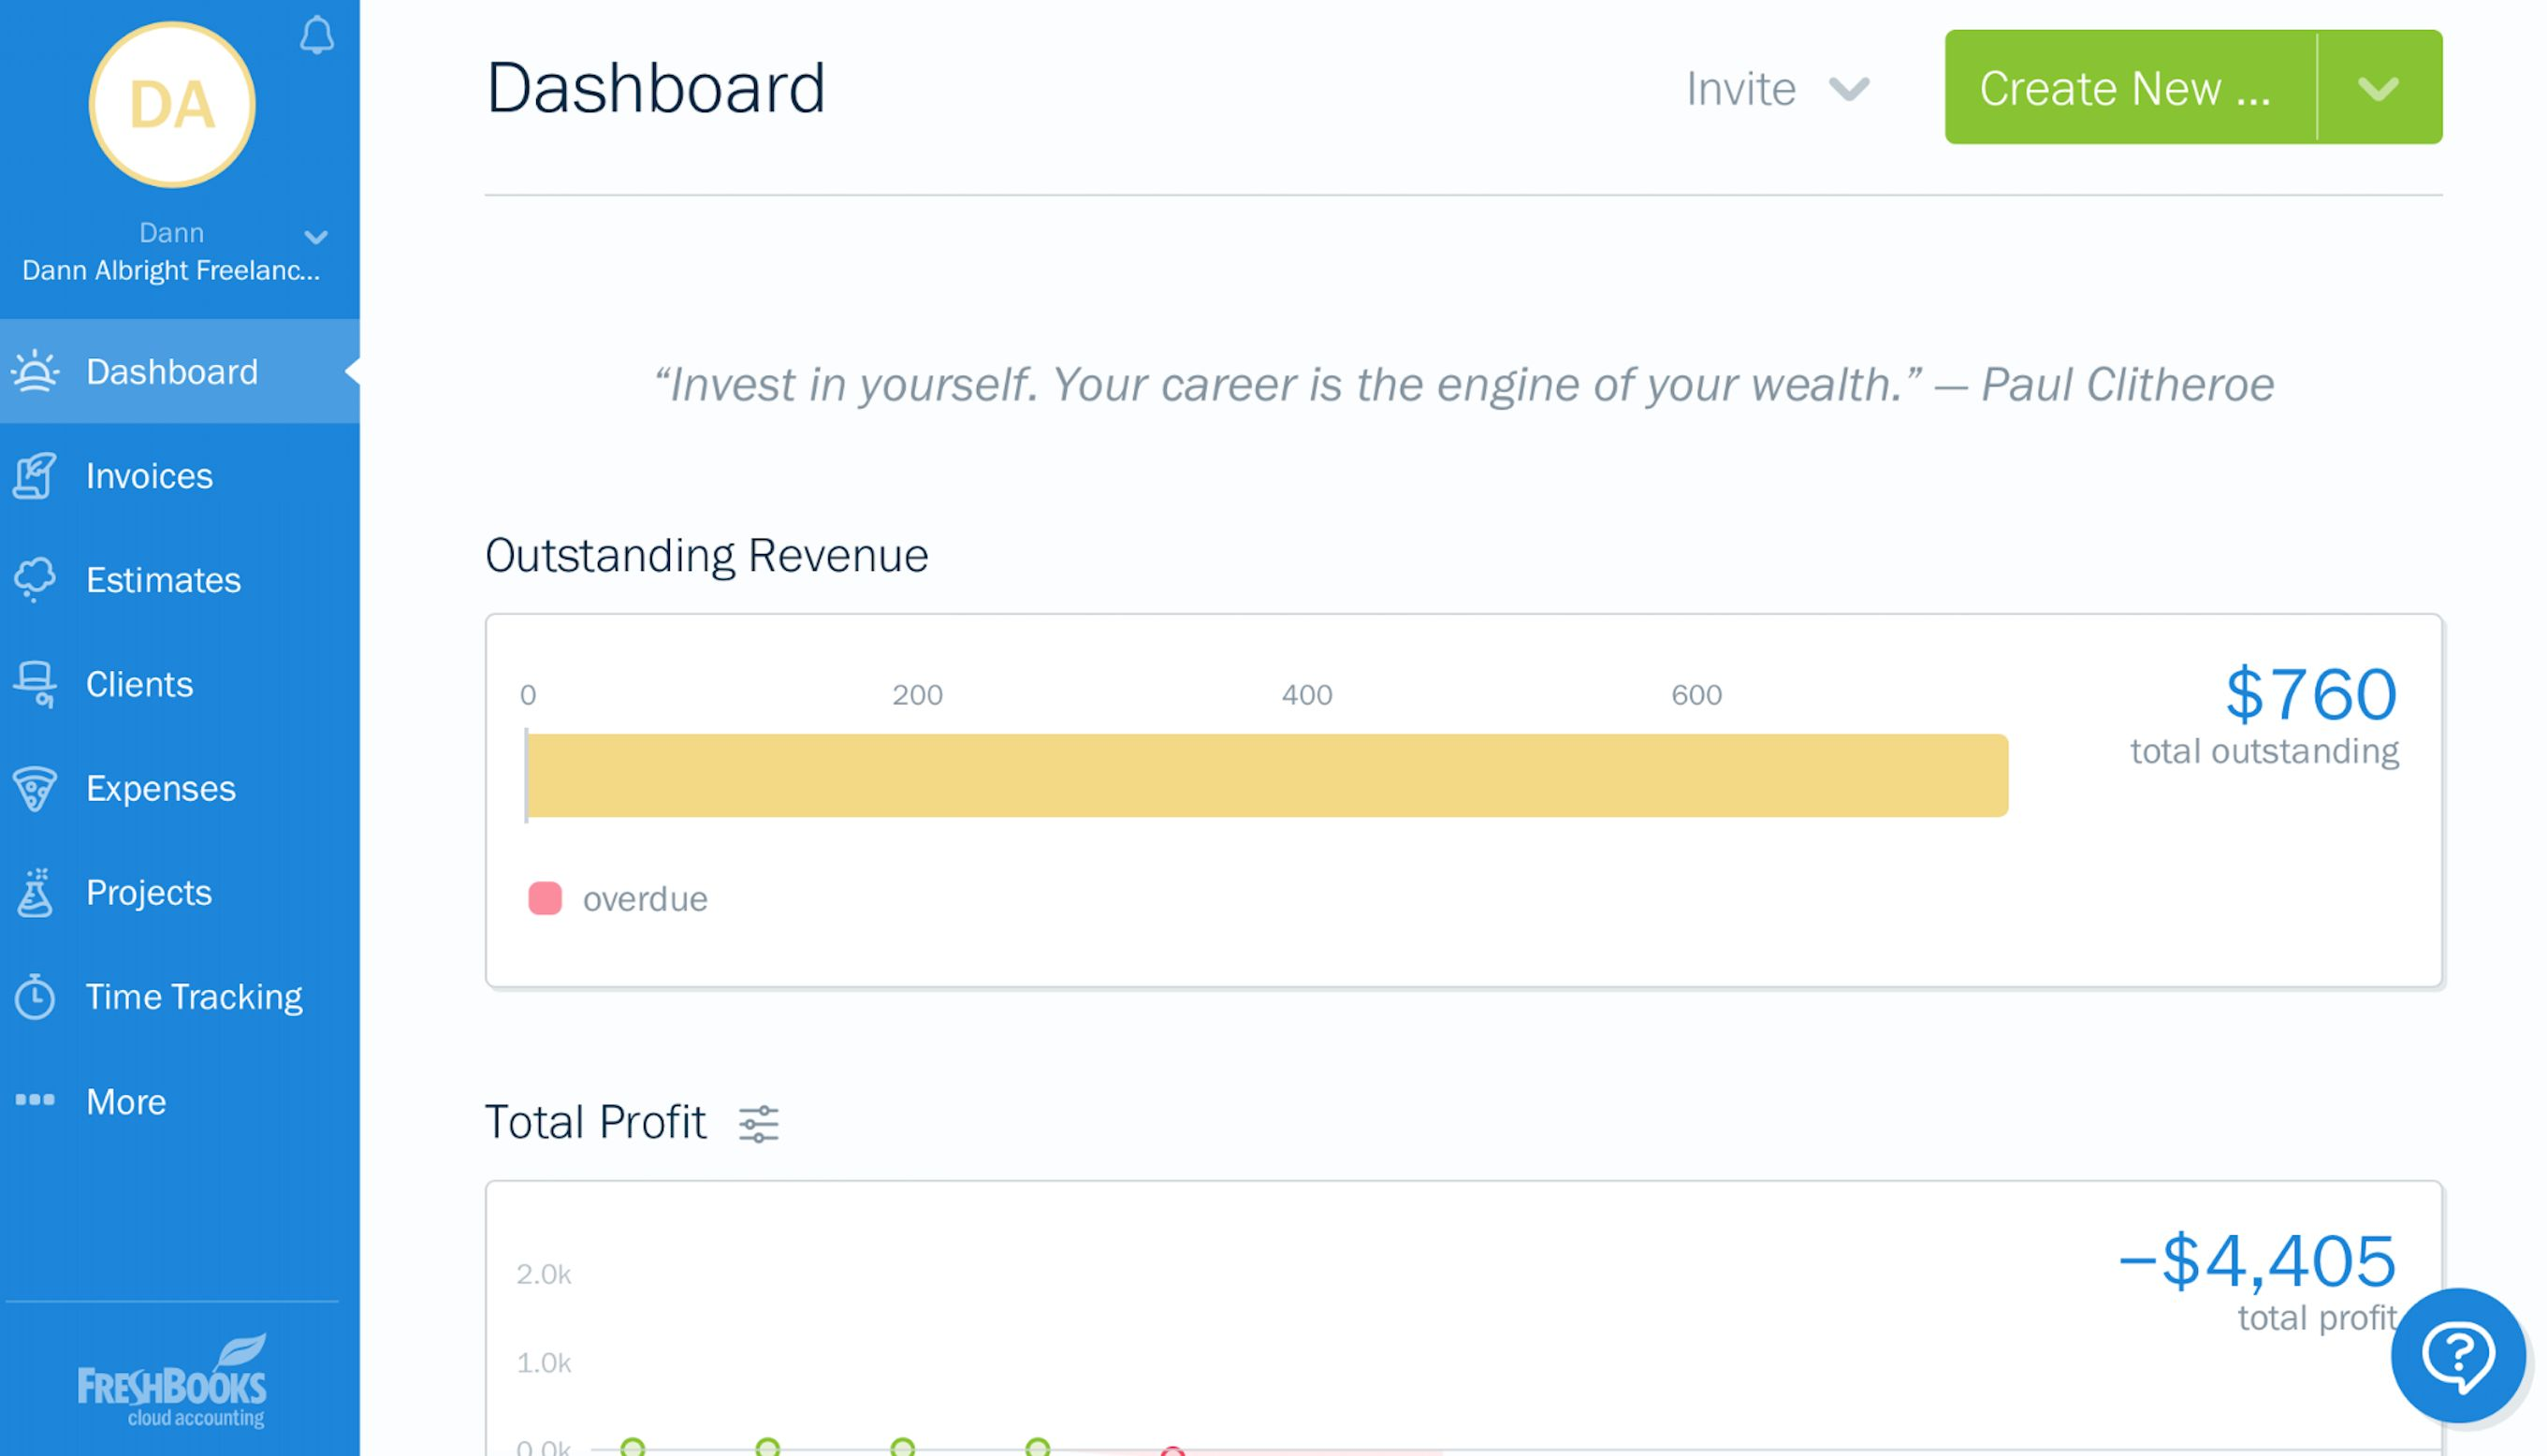 FreshBooks dashboard screenshot